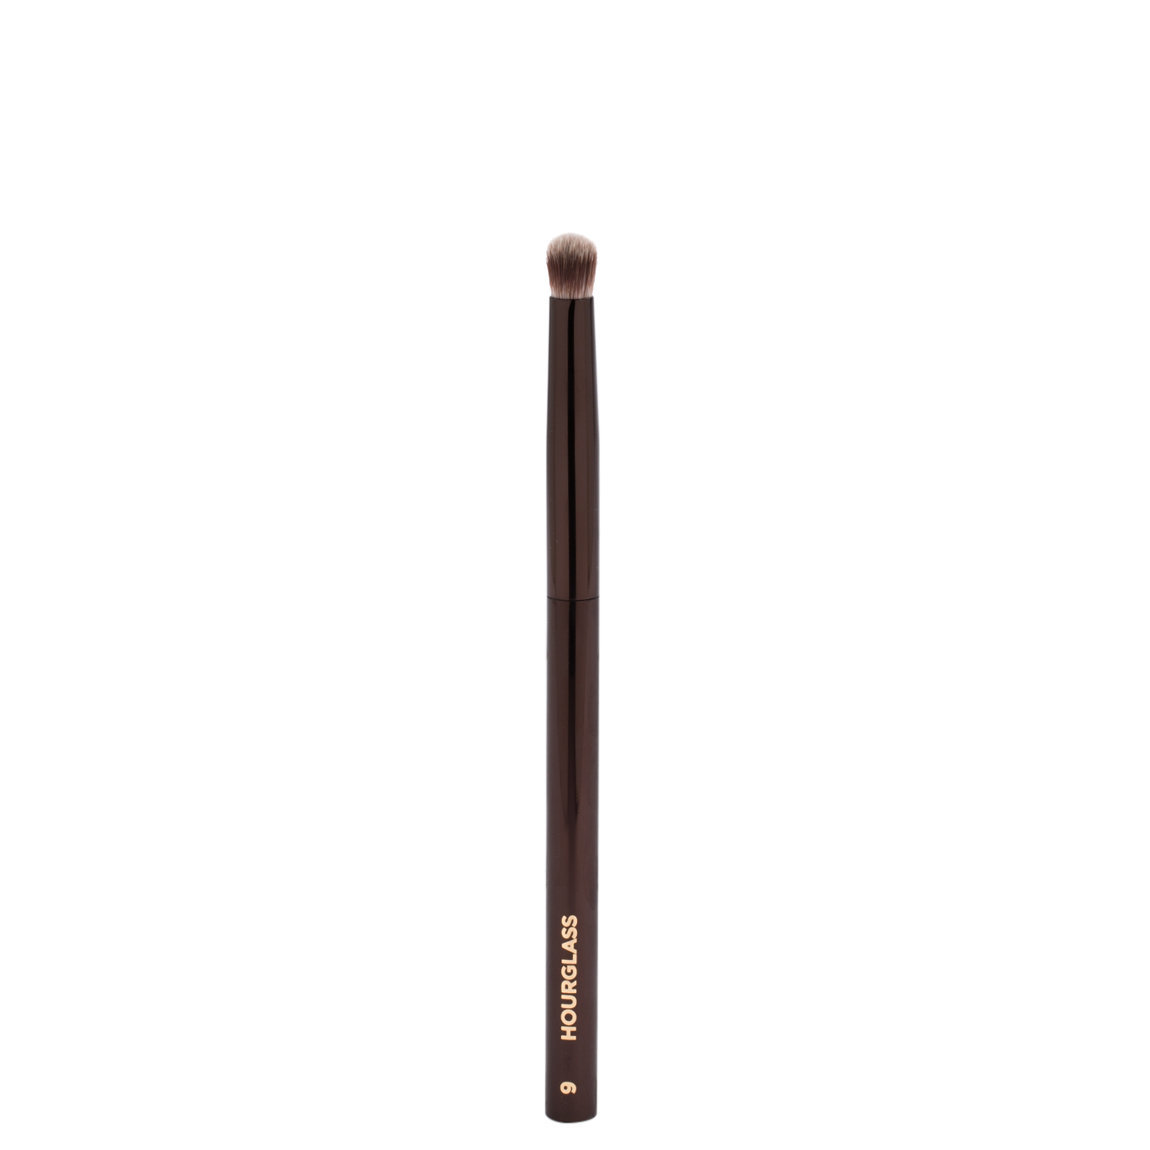 Hourglass N° 9 Domed Shadow Brush product smear.